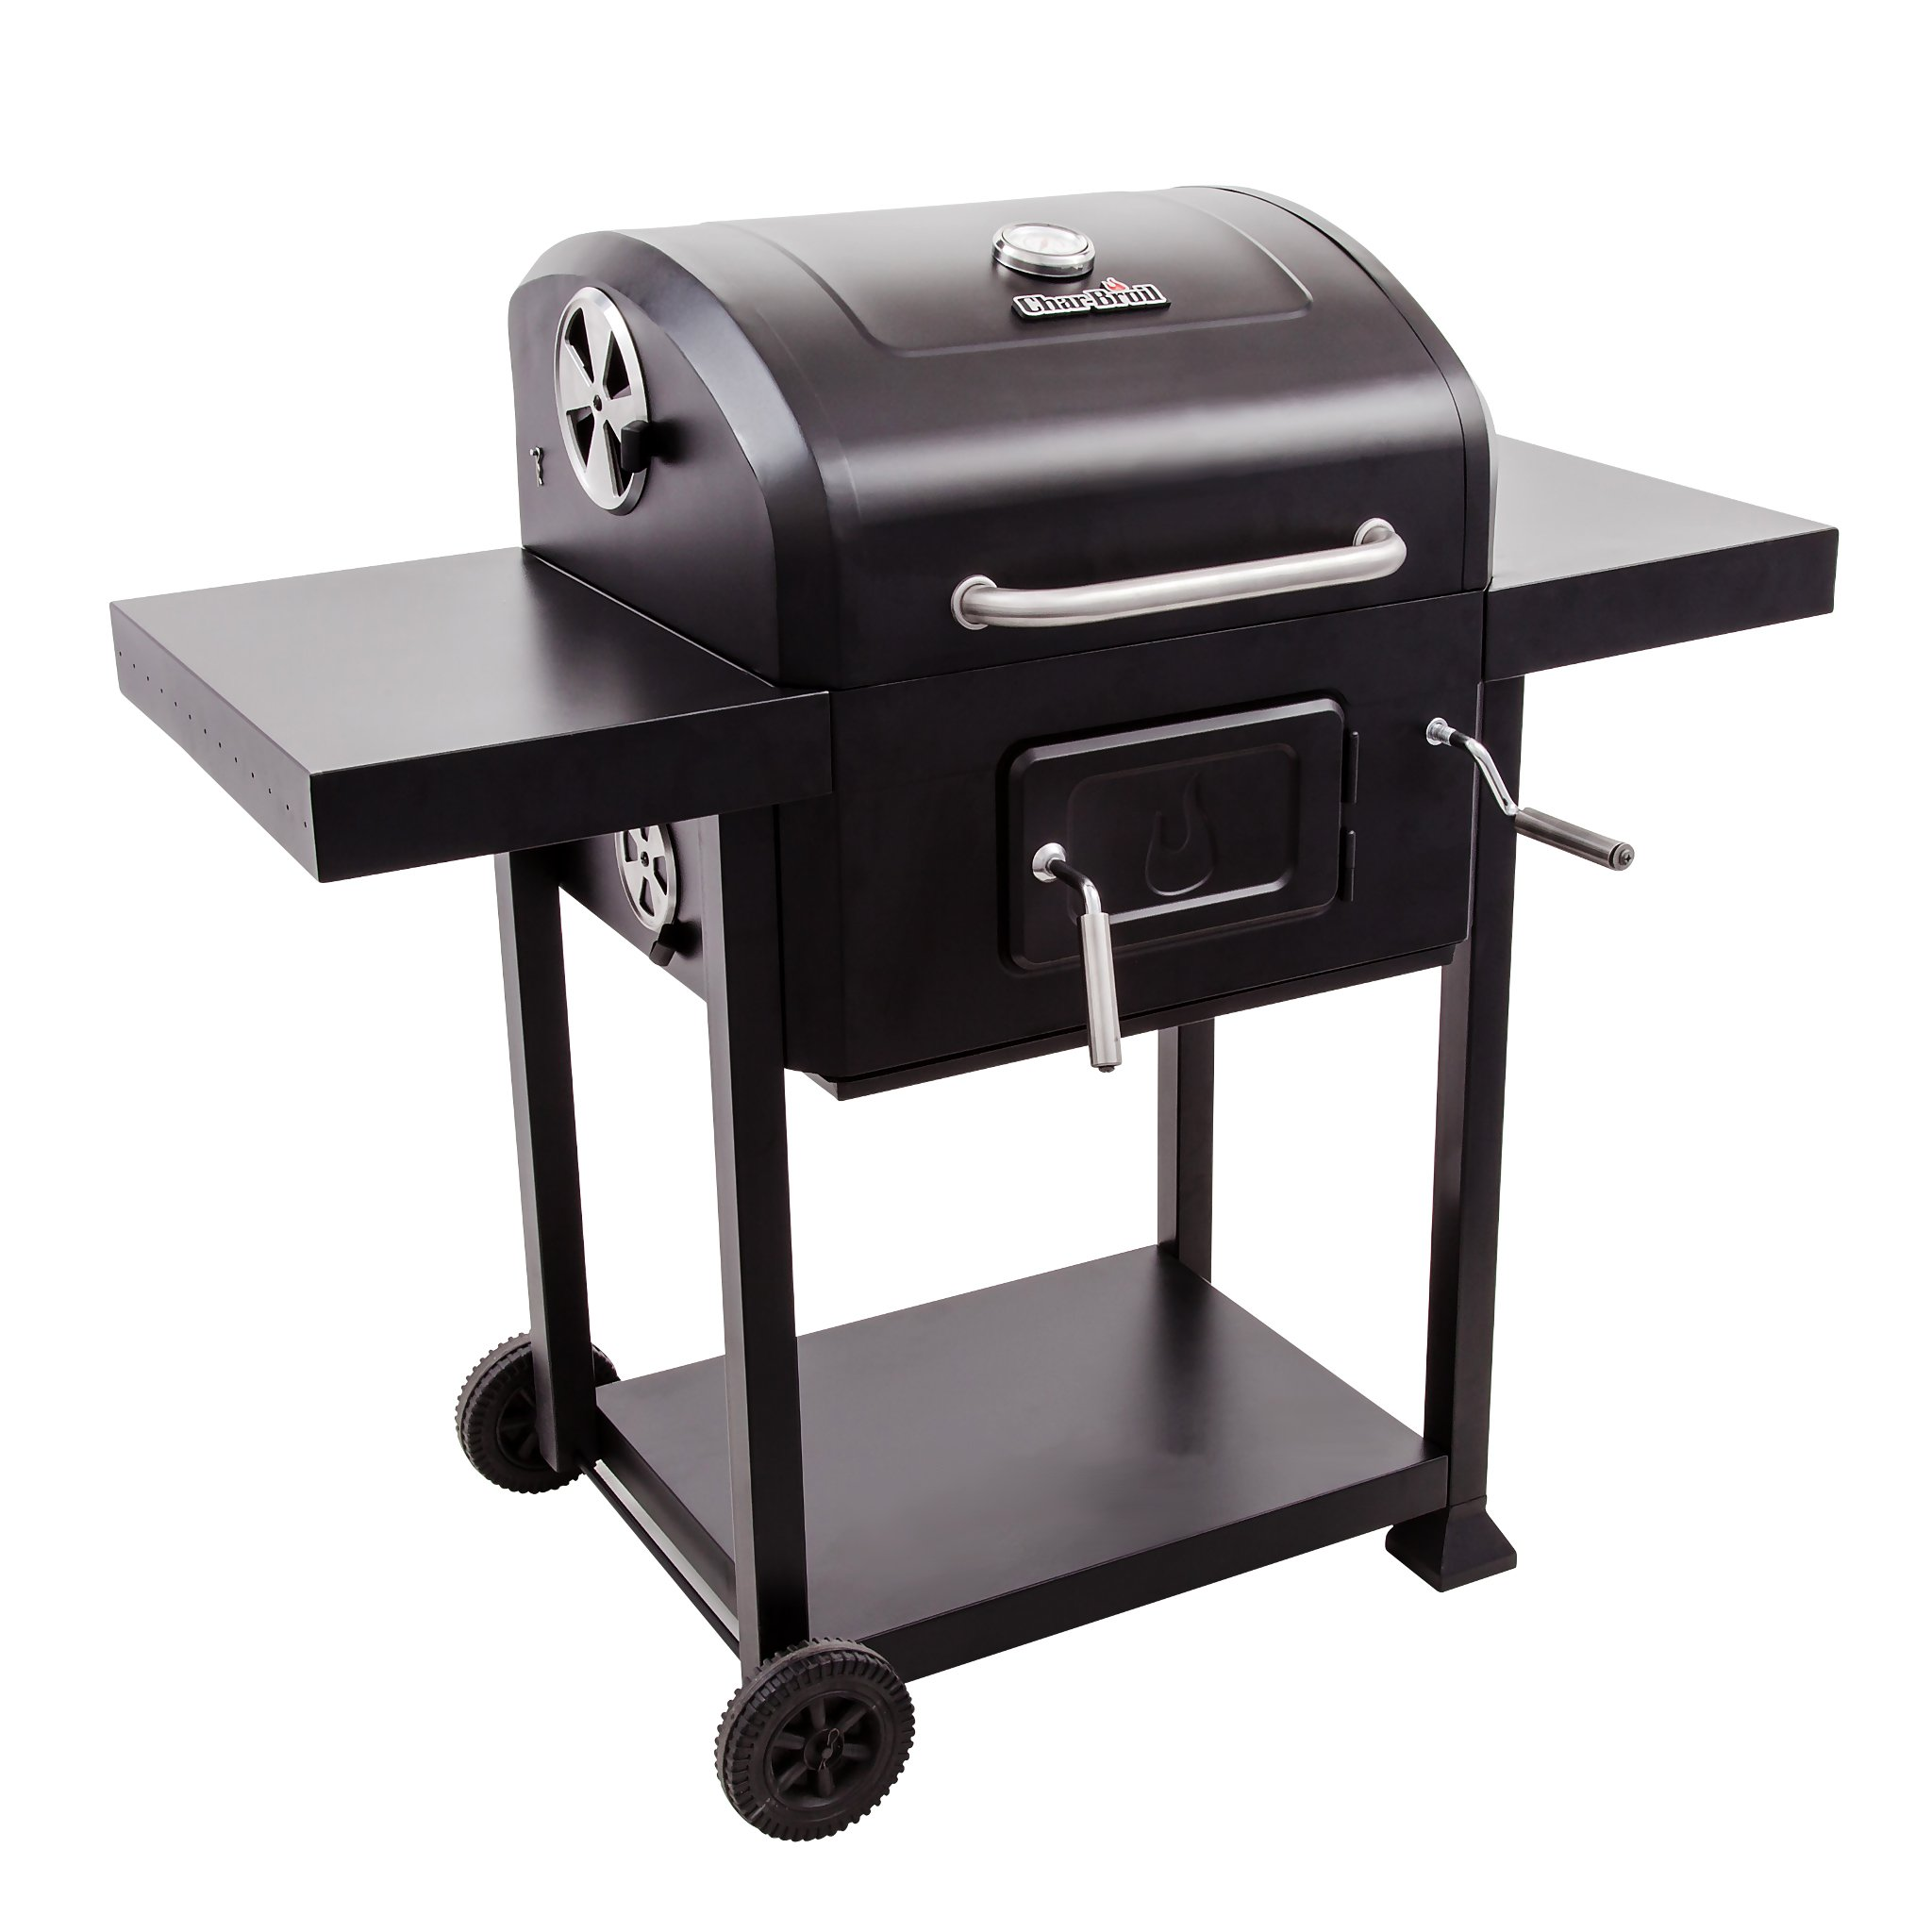 Char-Broil Charcoal Grill, 580 Square Inch by Char-Broil